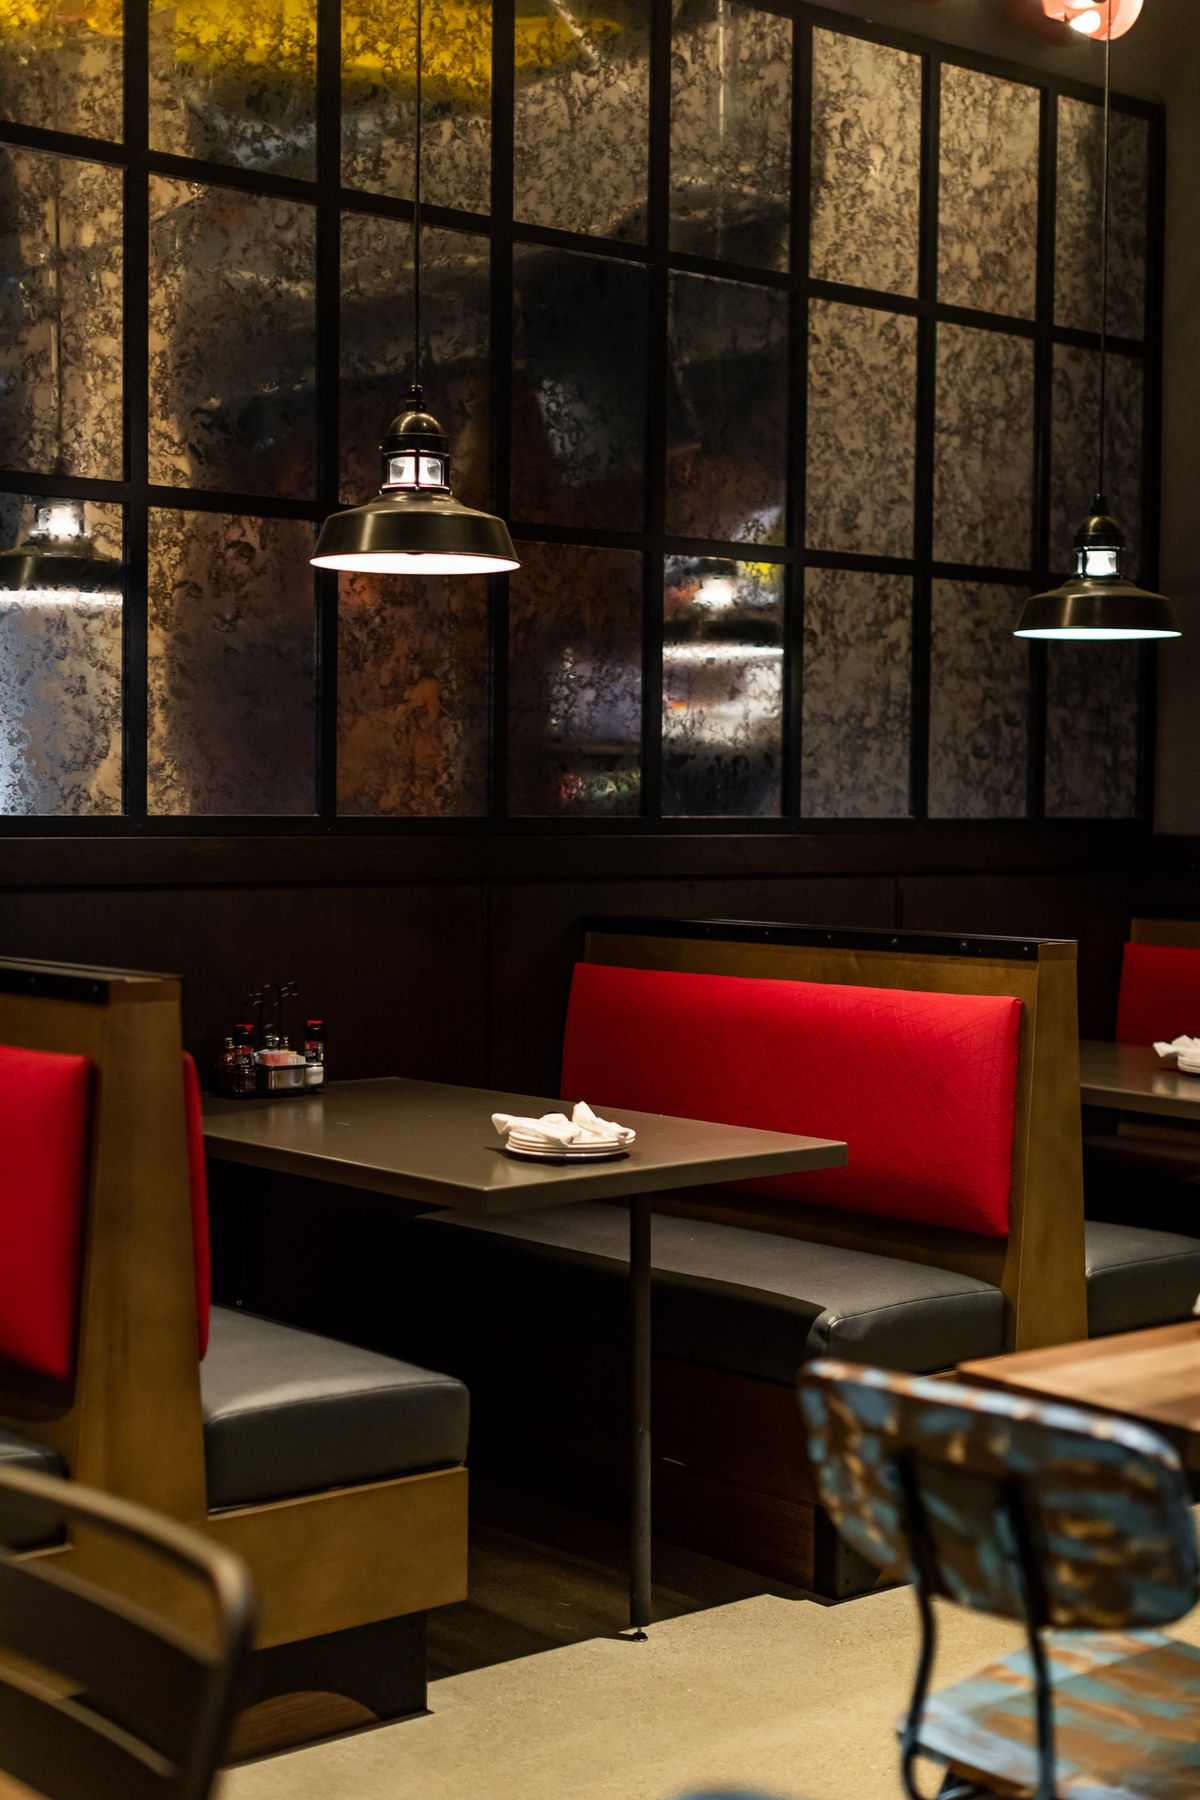 Wooden booths with pendant lights and red and white upholstery at Buddy's in downtown Detroit.